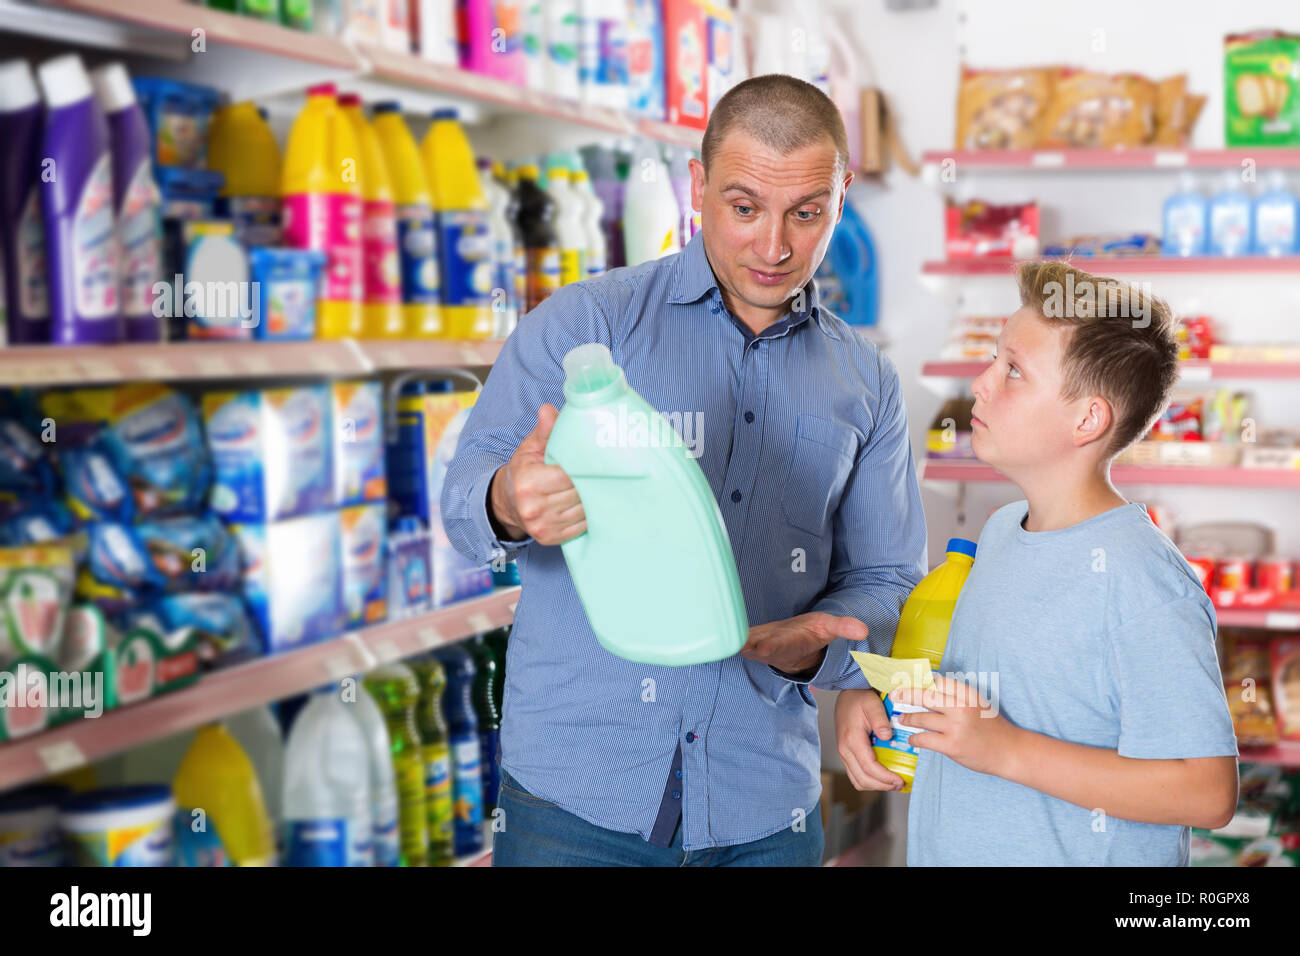 man and boy buying household chemicals with shopping list in